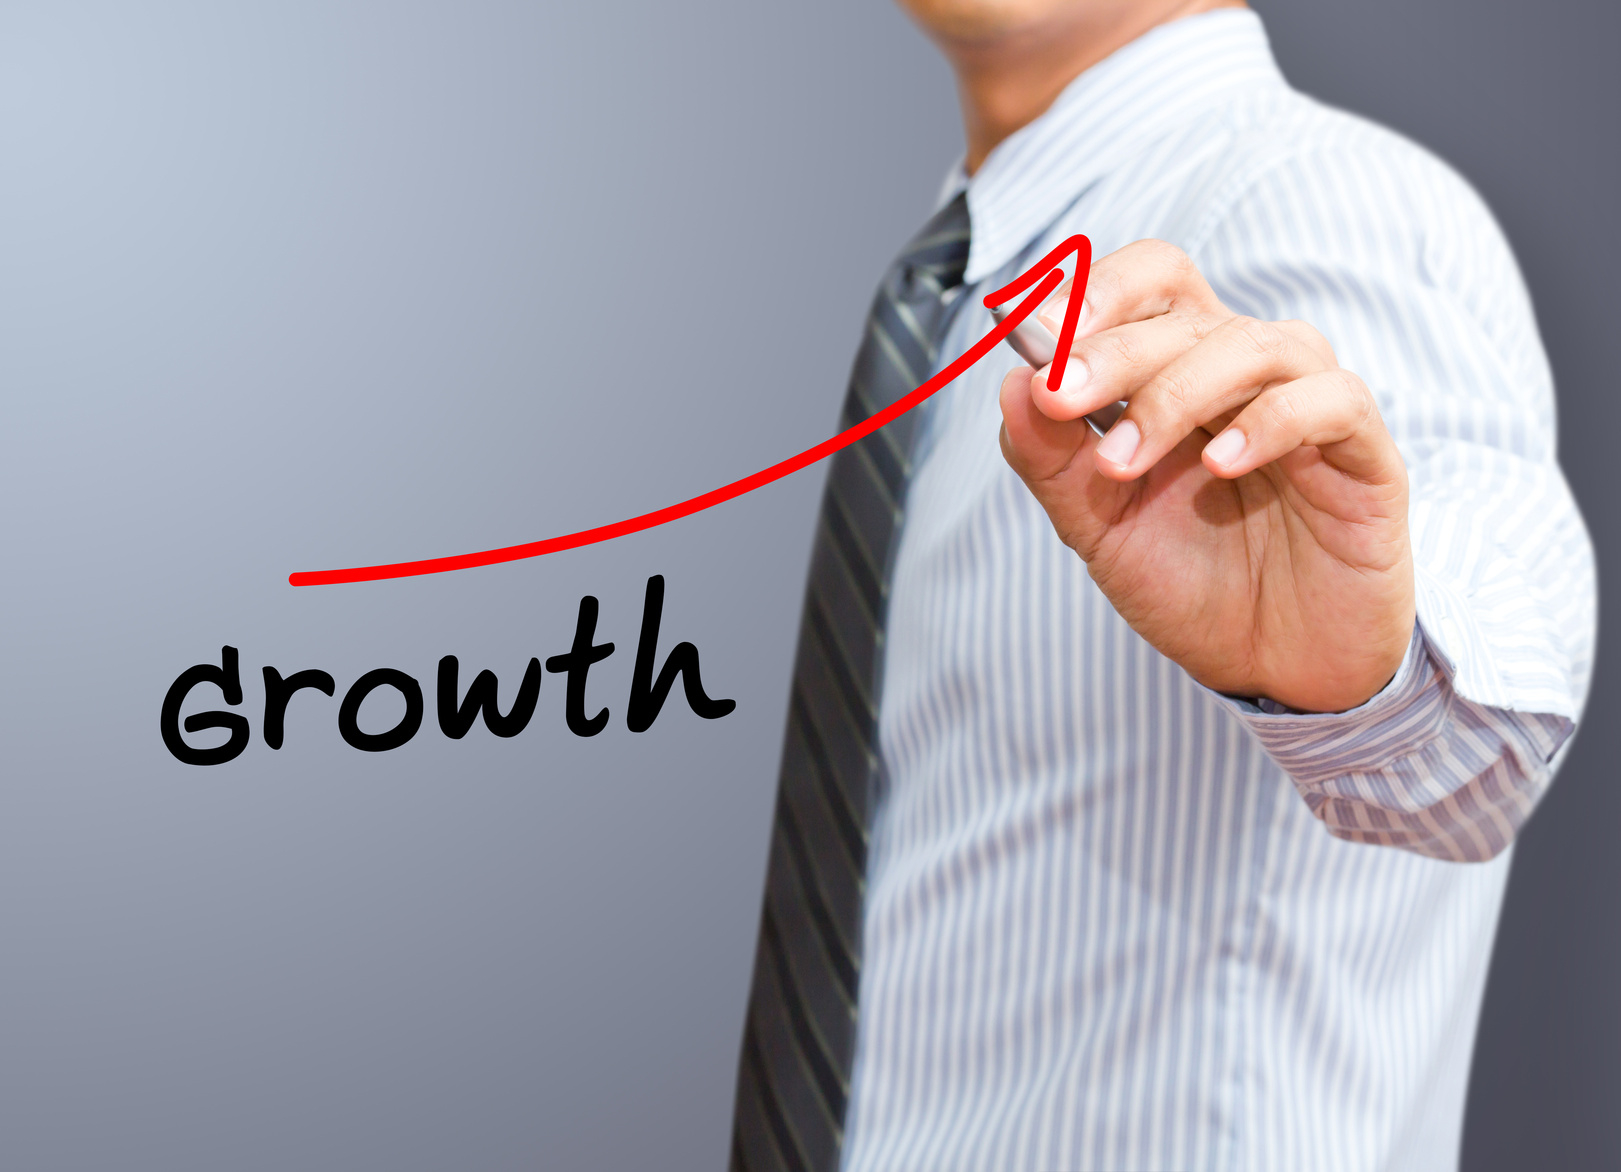 5 Resources That Can Help You Grow Your Business